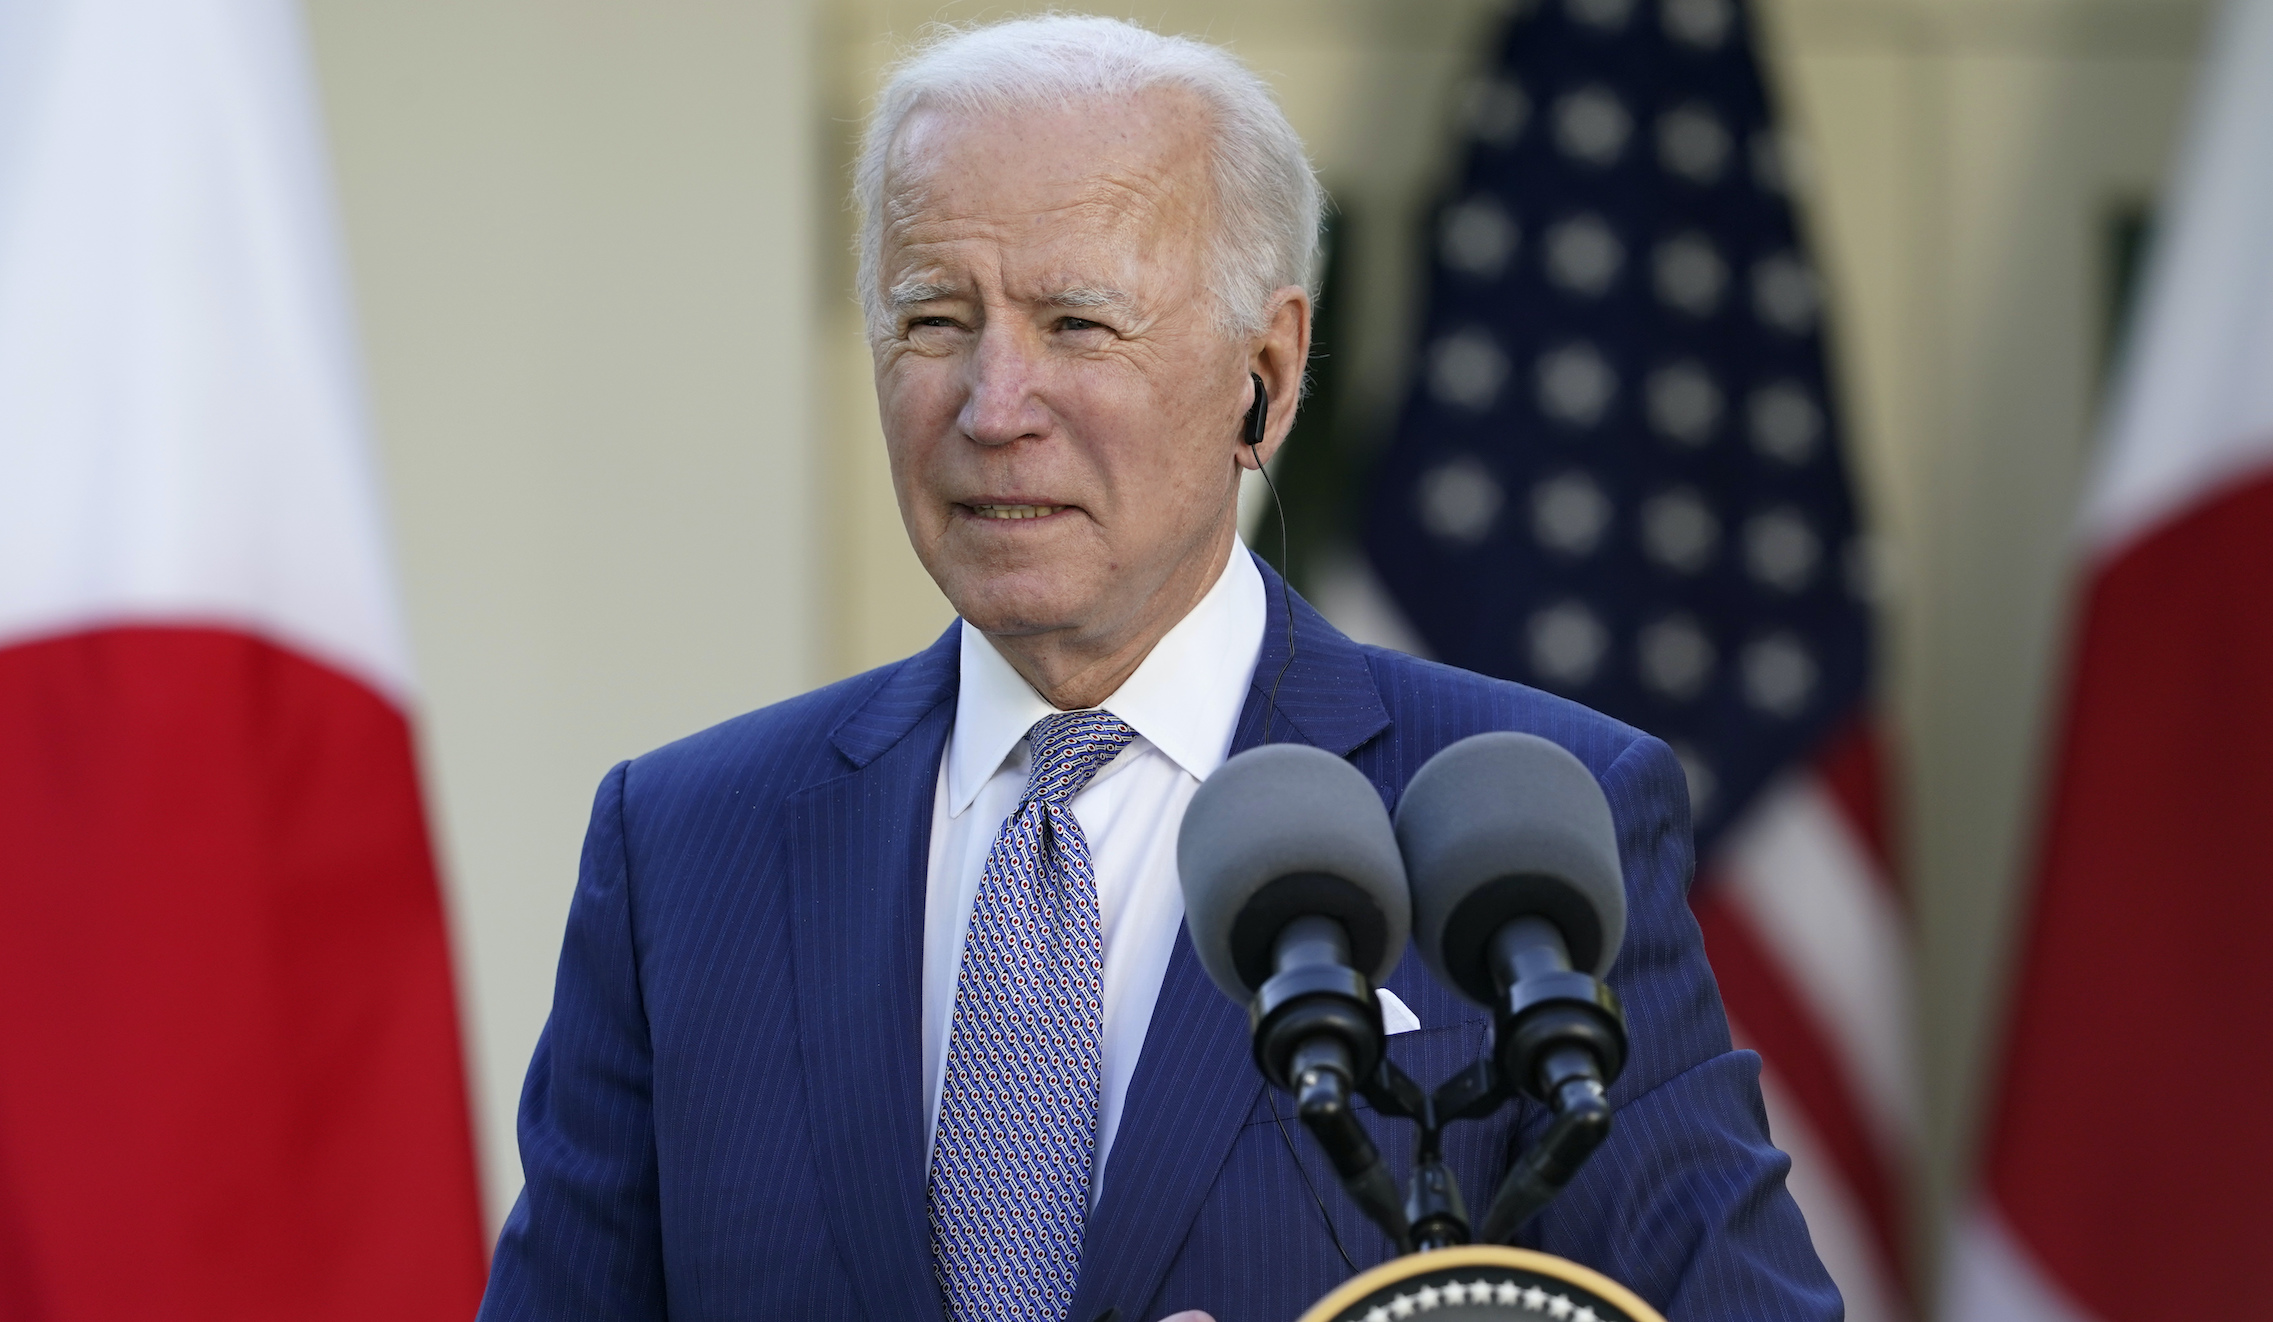 Biden defends pushing other bills before gun control after Indianapolis shooting